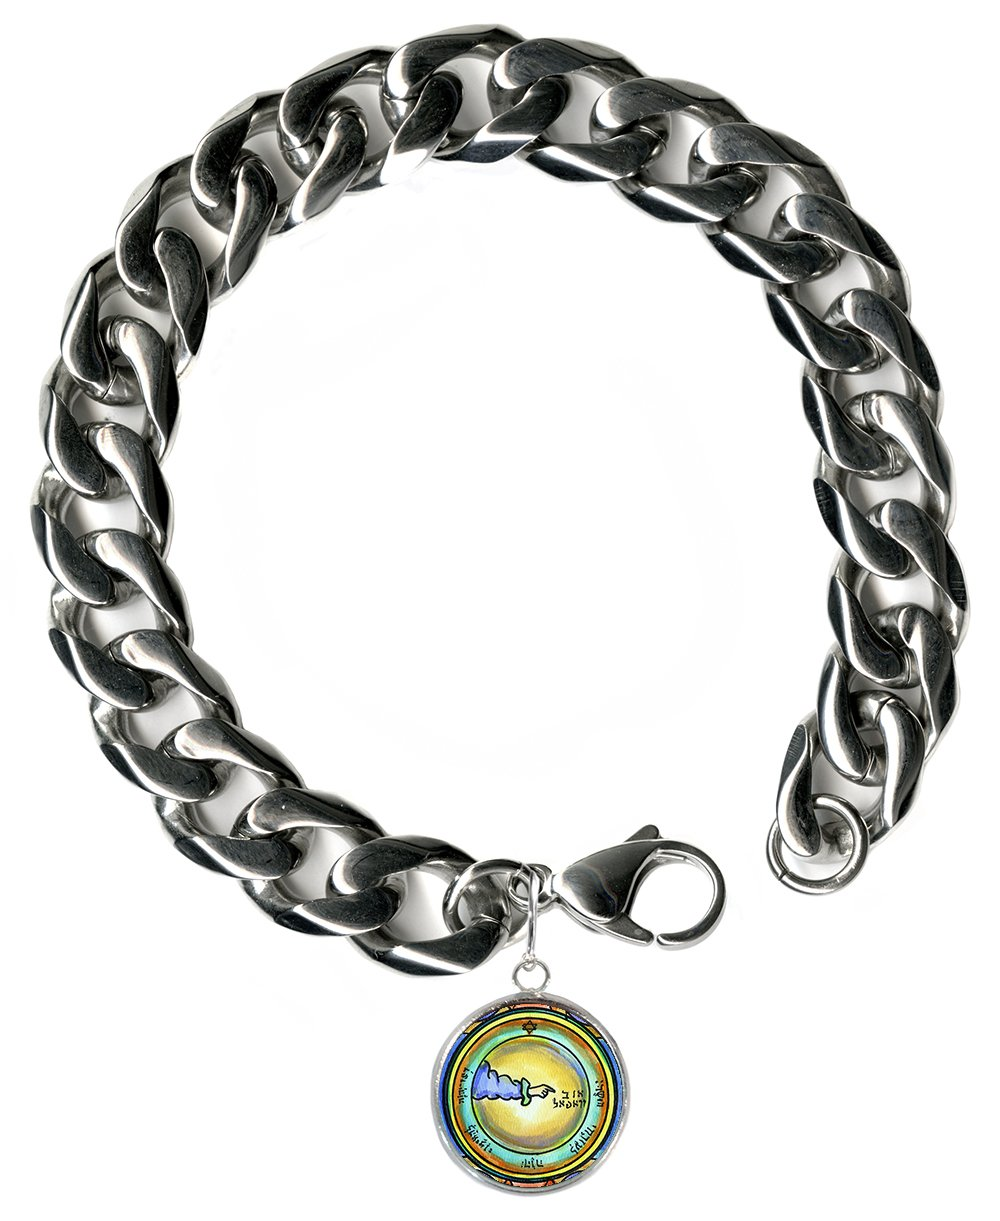 Solomons 3rd Moon for Travel Protection Steel 9'' Mens Bracelet 12mm Thick Curb Chain